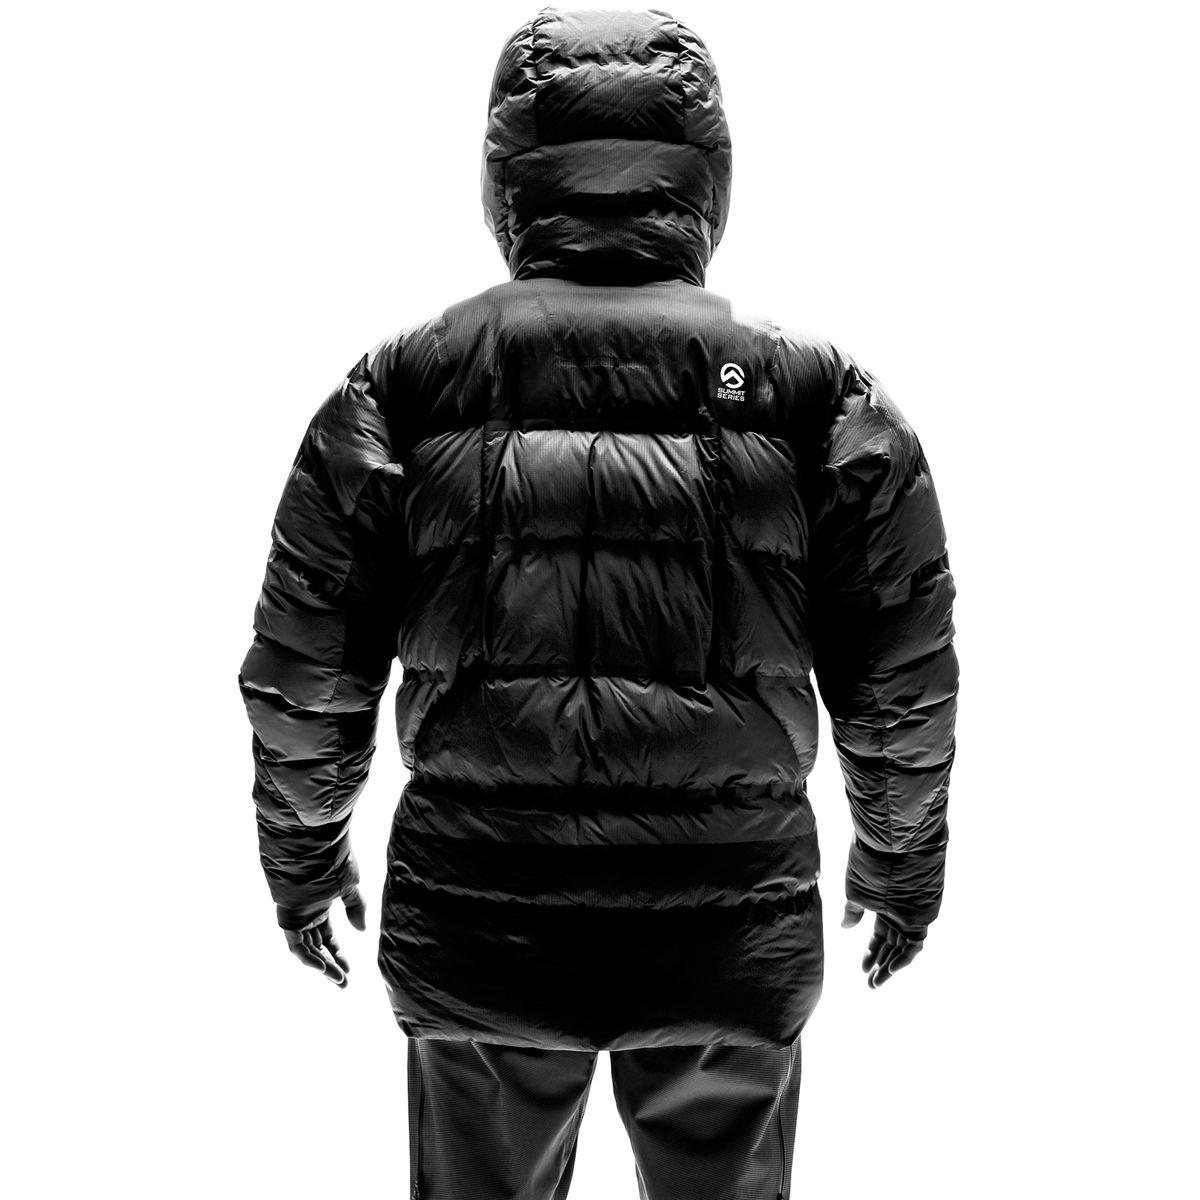 ... authentic the north face black summit l6 down jacket for men lyst .  fe046 0a849 6620c759d